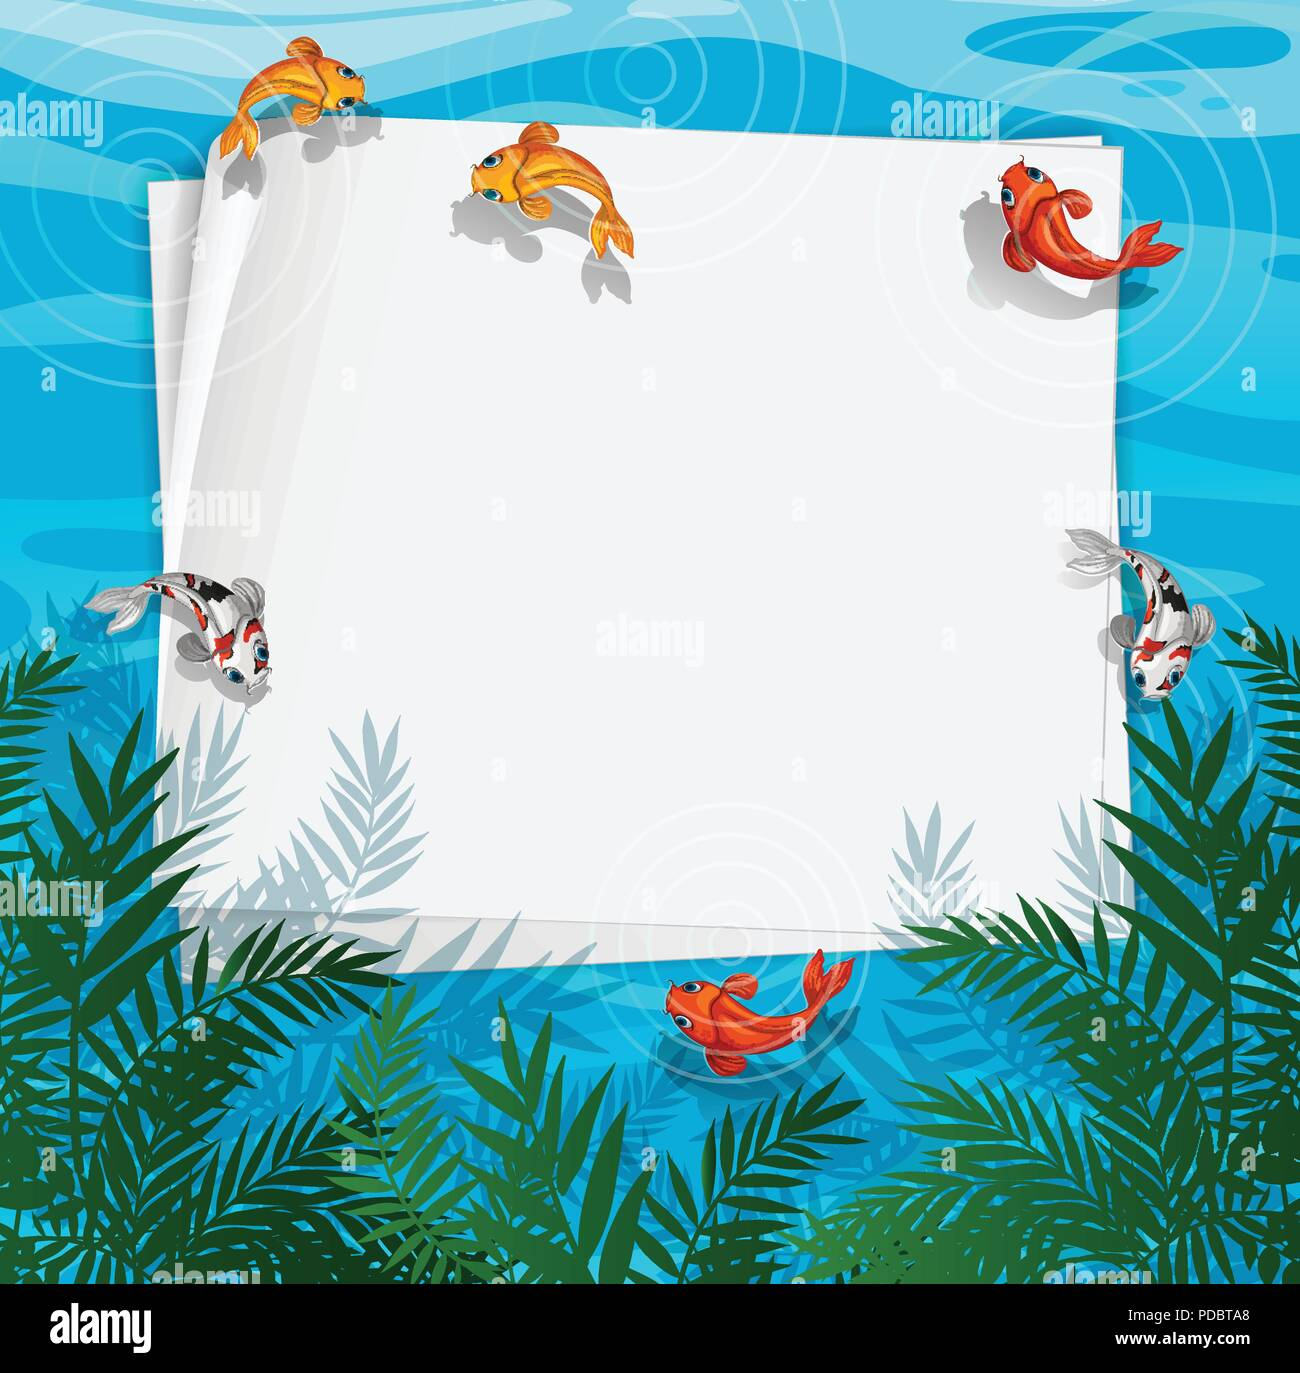 A fish pond frame illustration Stock Vector Art & Illustration ...